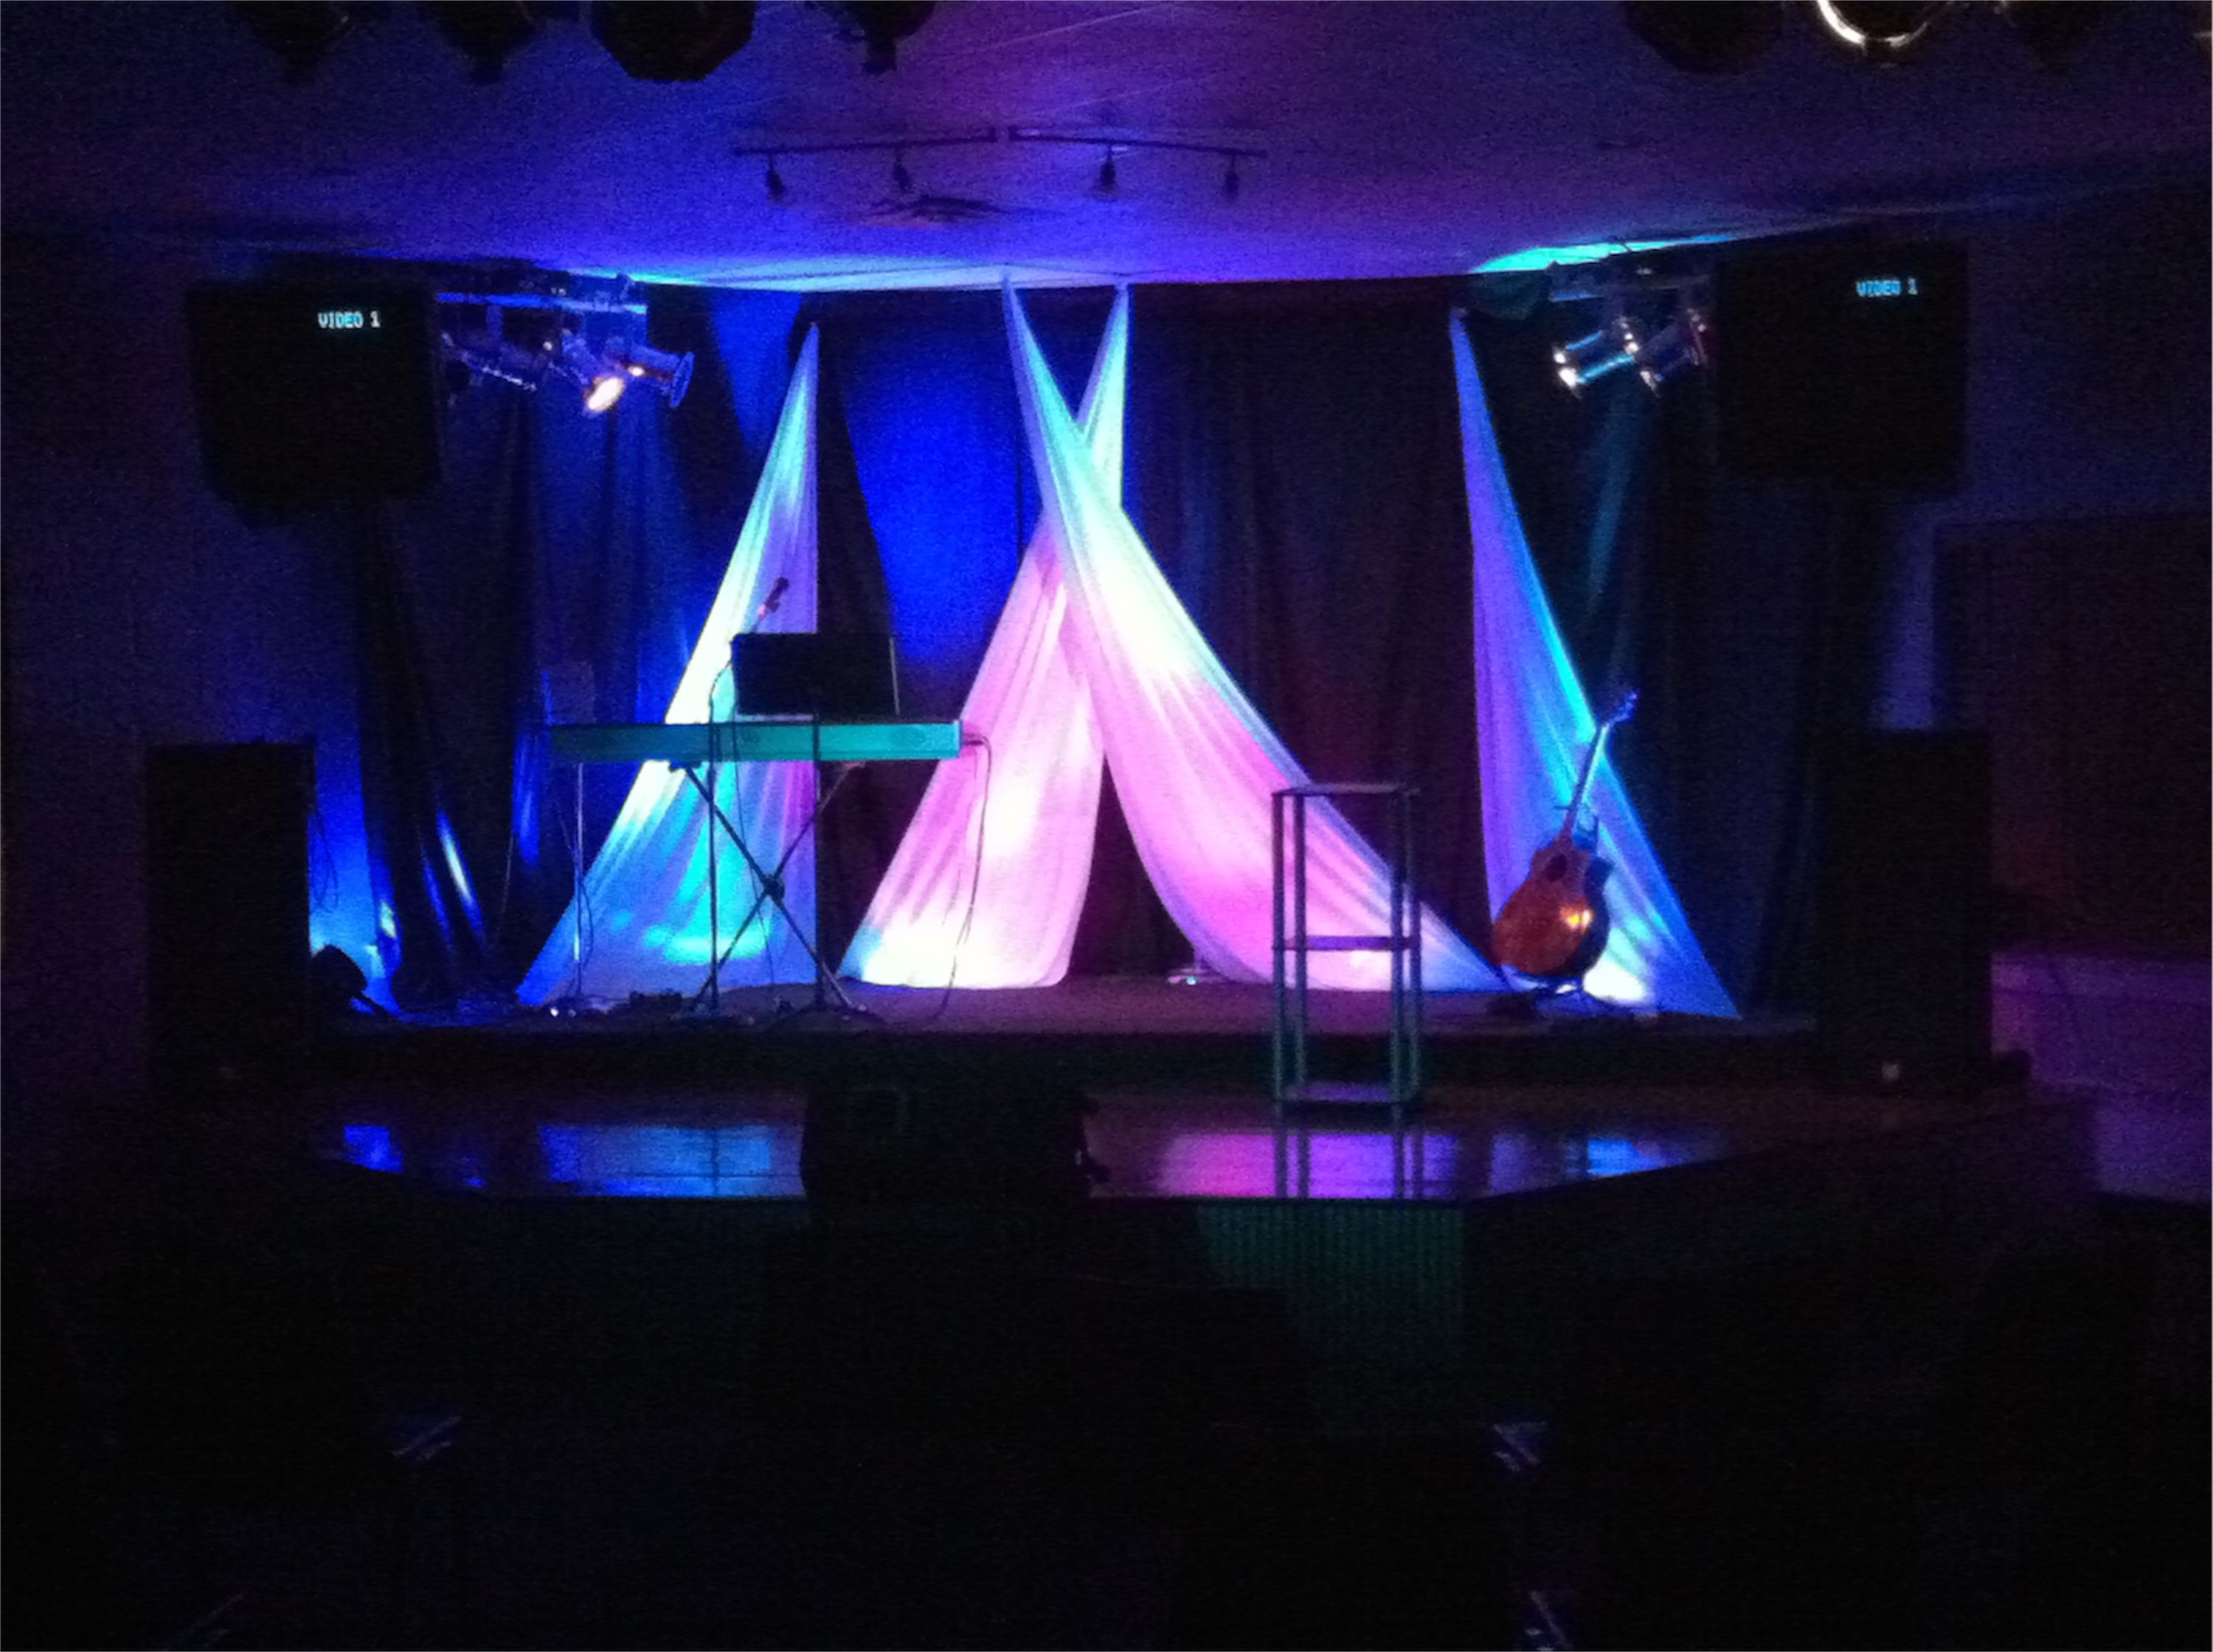 Related image | Stage Design | Pinterest | Stage design, Stage and ...